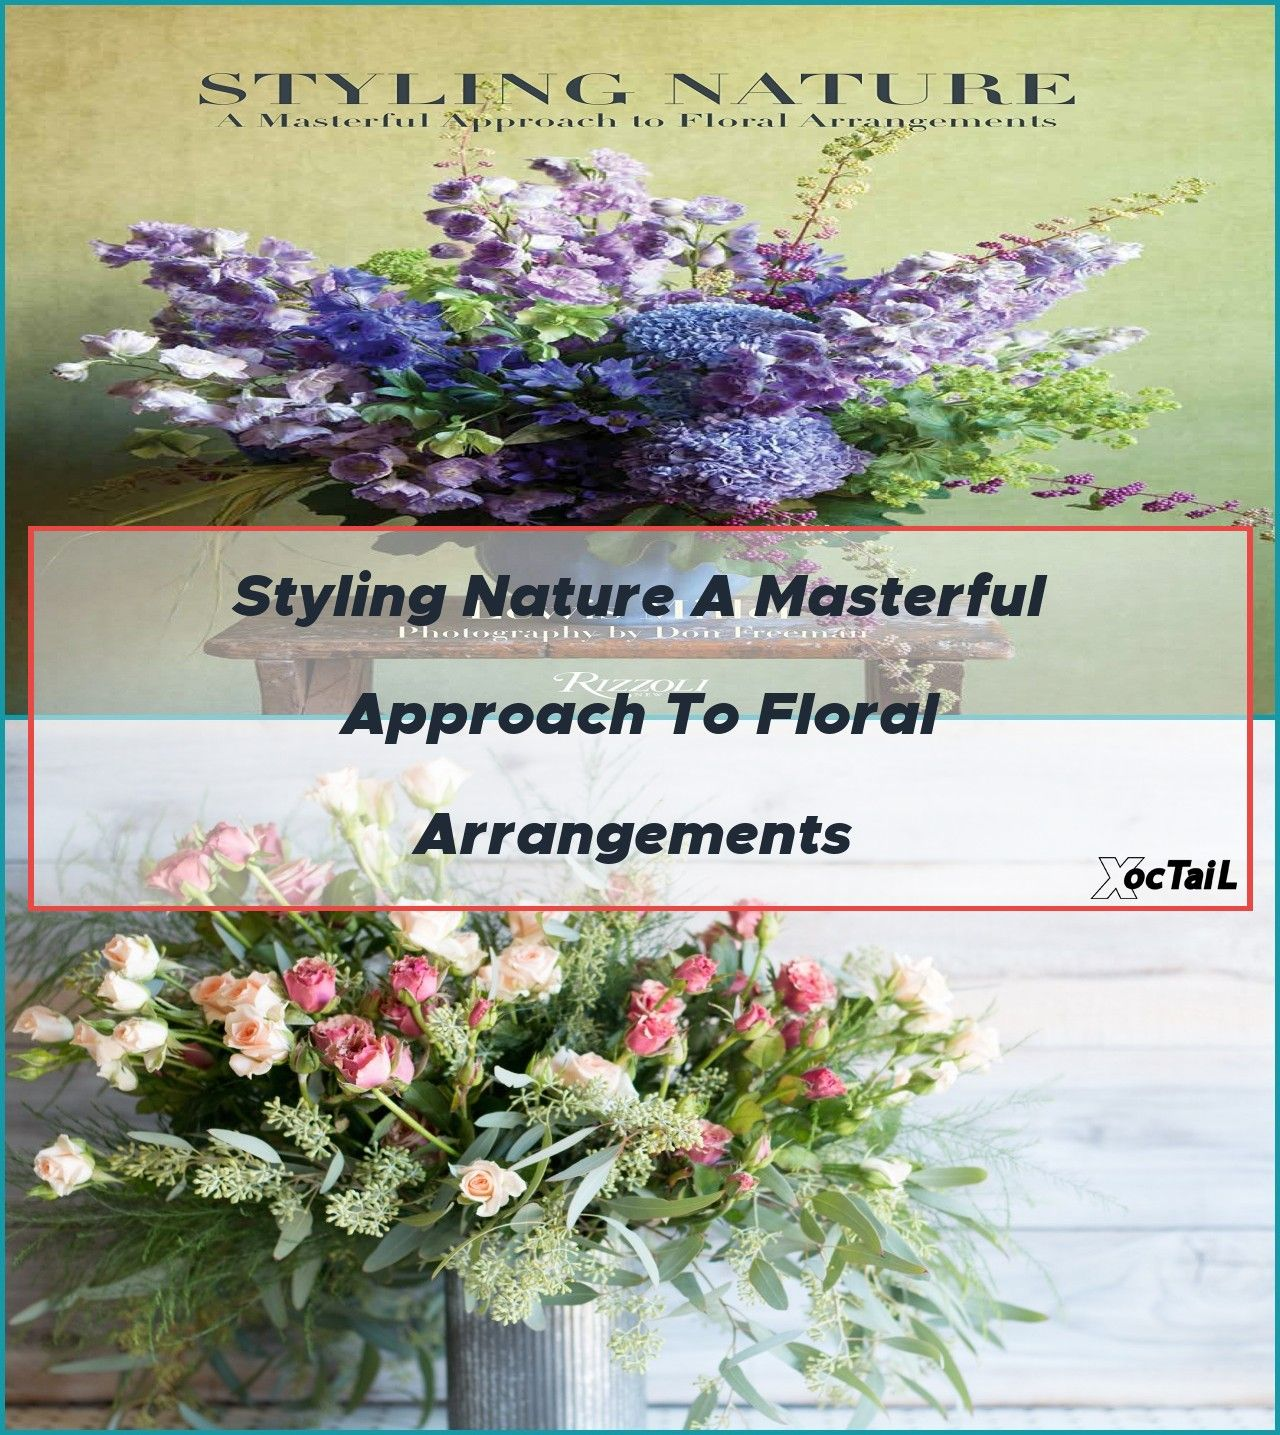 Styling Nature A Masterful Approach to Floral Arrangements